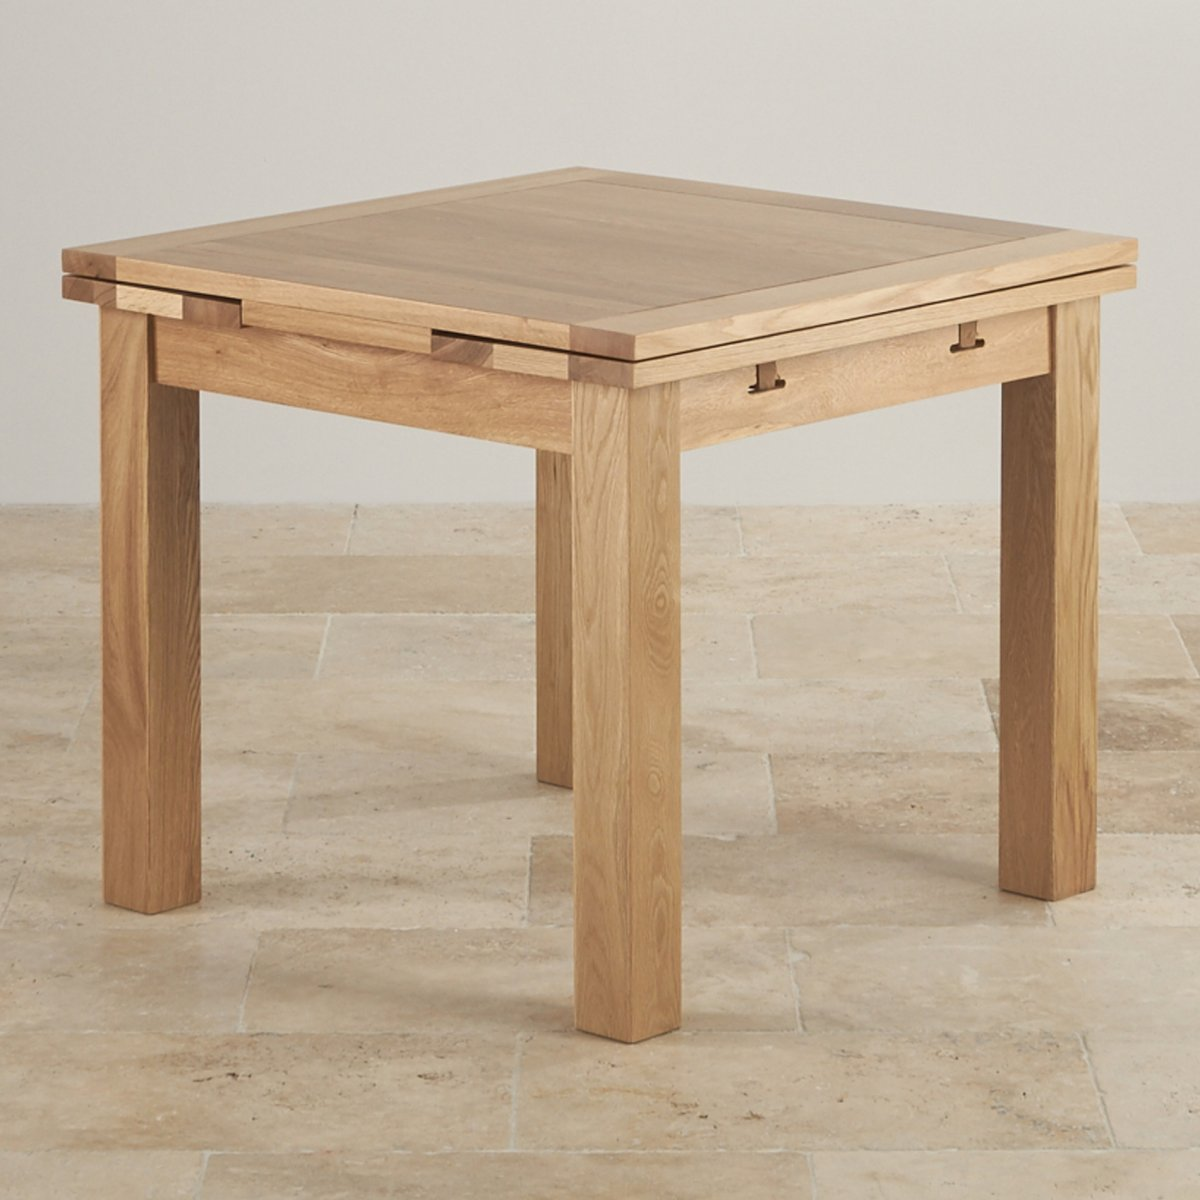 3 X 8 Table Dorset 3ft X 3ft Natural Oak Extending Dining Table Seats